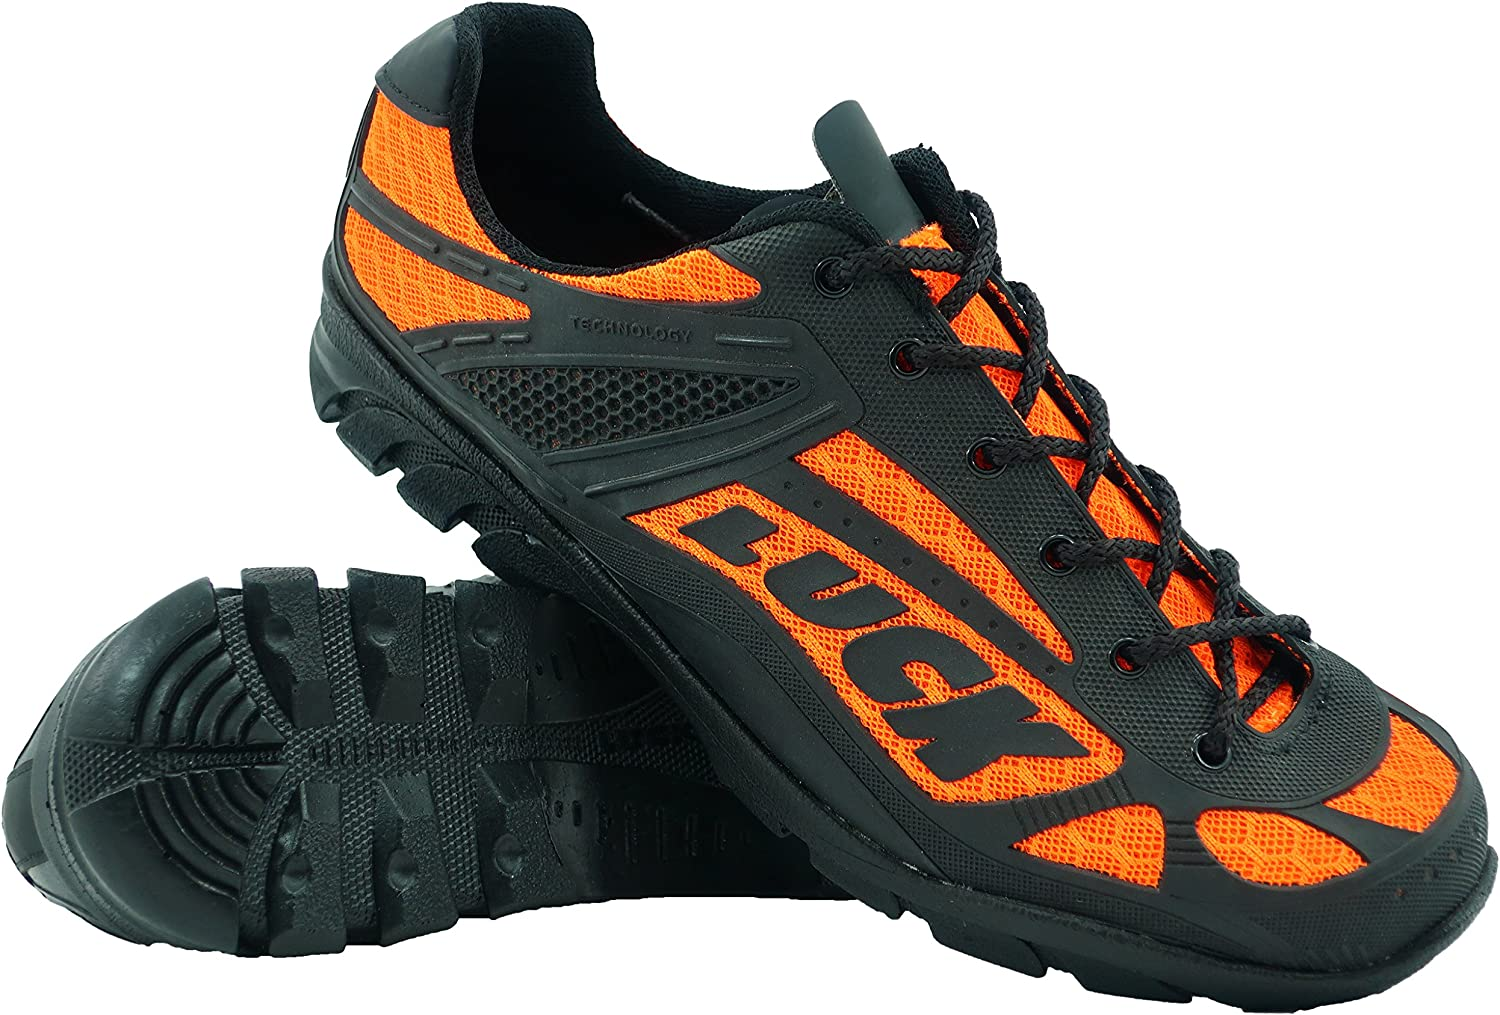 LUCK Predator 18.0 MTB Cycling shoes, with EVA sole, ideal for adapting to all terrains and enjoying sports discipline.